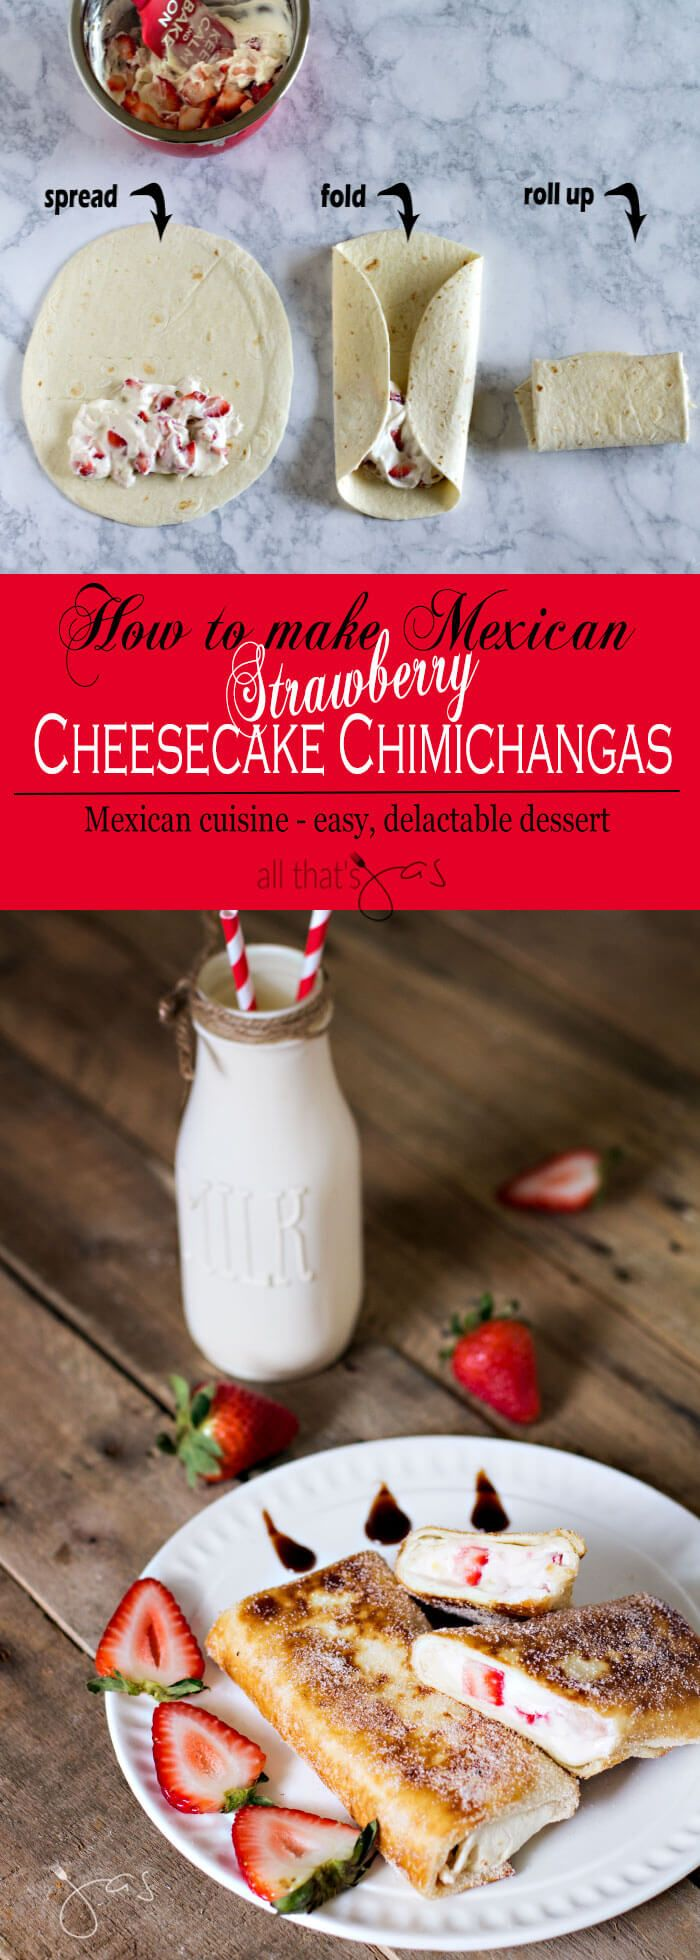 Fried burittos filled with strawberry cheesecake make these chimichangas, an easy and delicious Mexican dessert